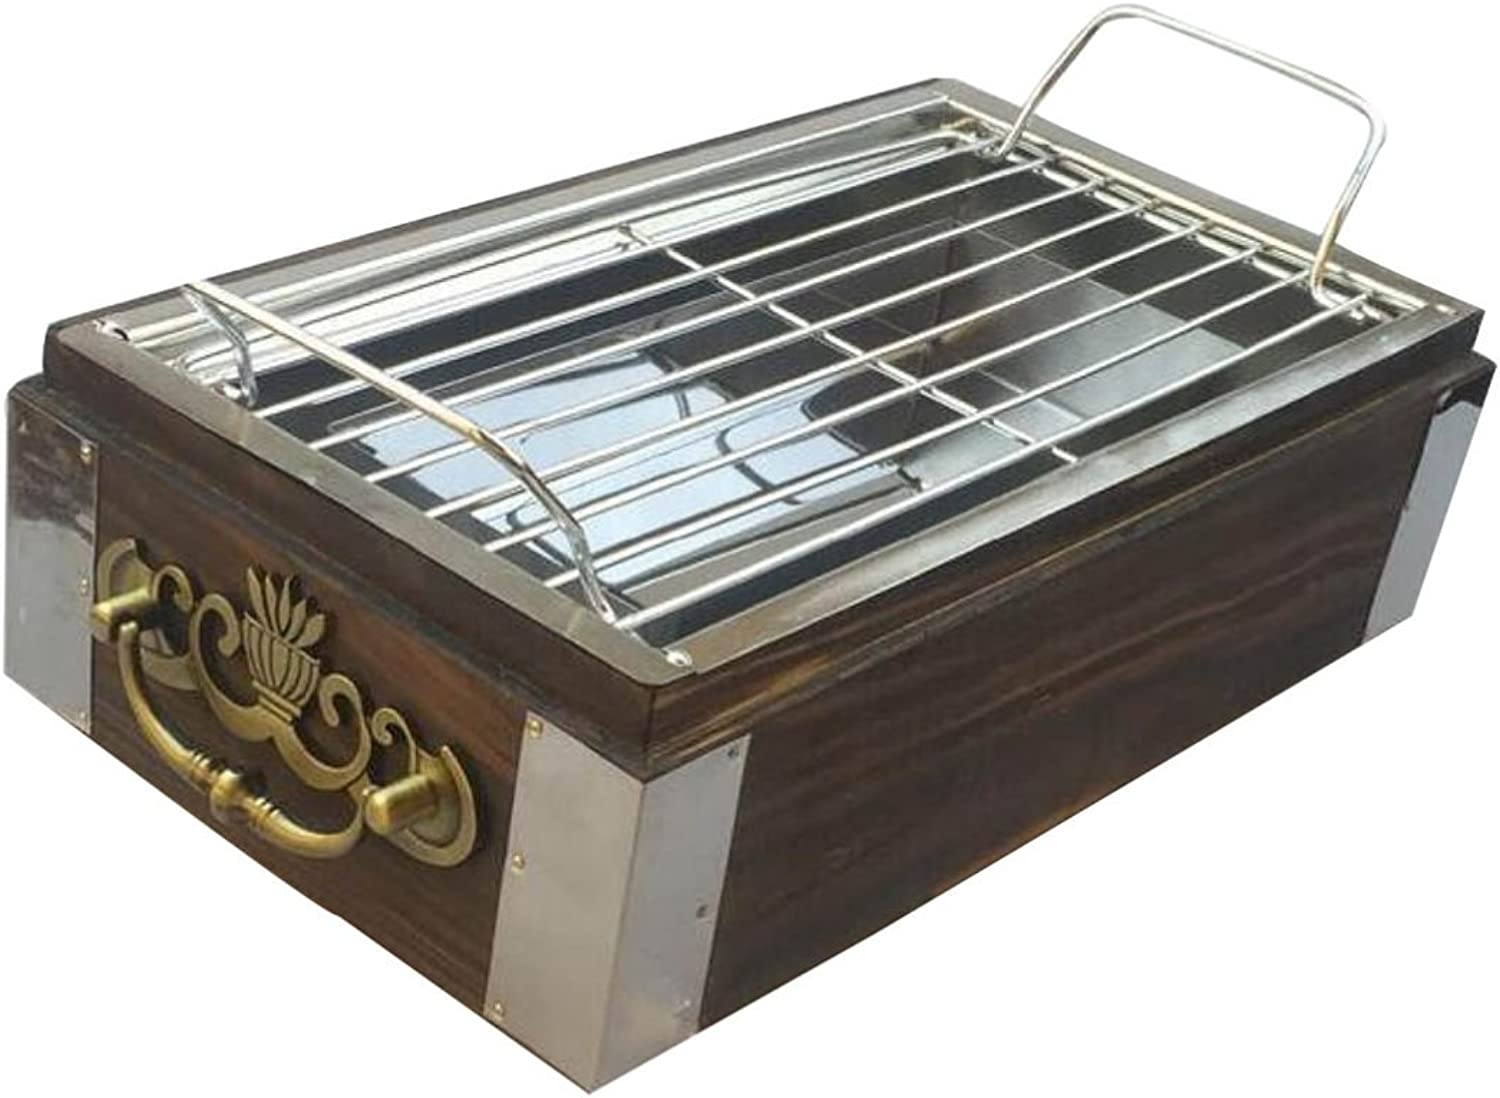 HAOYUXIANG Retro Hlzernes Helles Bewegliches Bequemes Drauen Paar-Familien-Party-Grill-Gruben,Grill